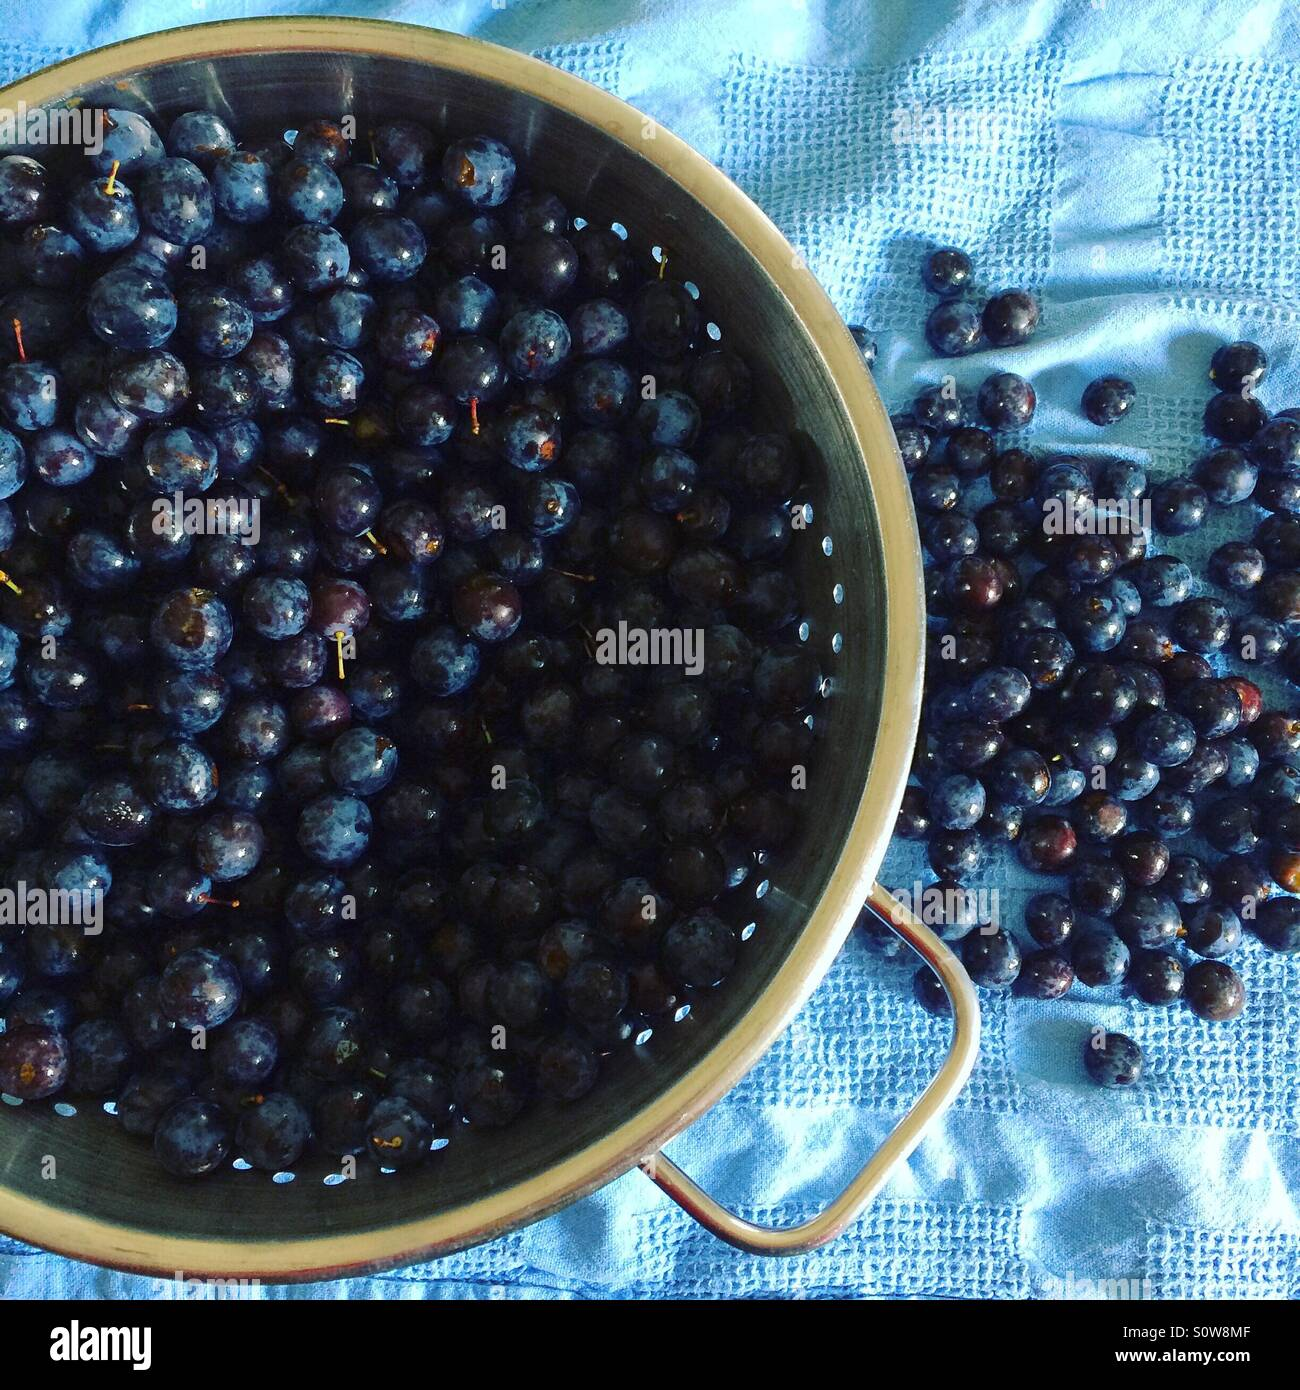 Sloes washed and ready to make sloe gin. - Stock Image